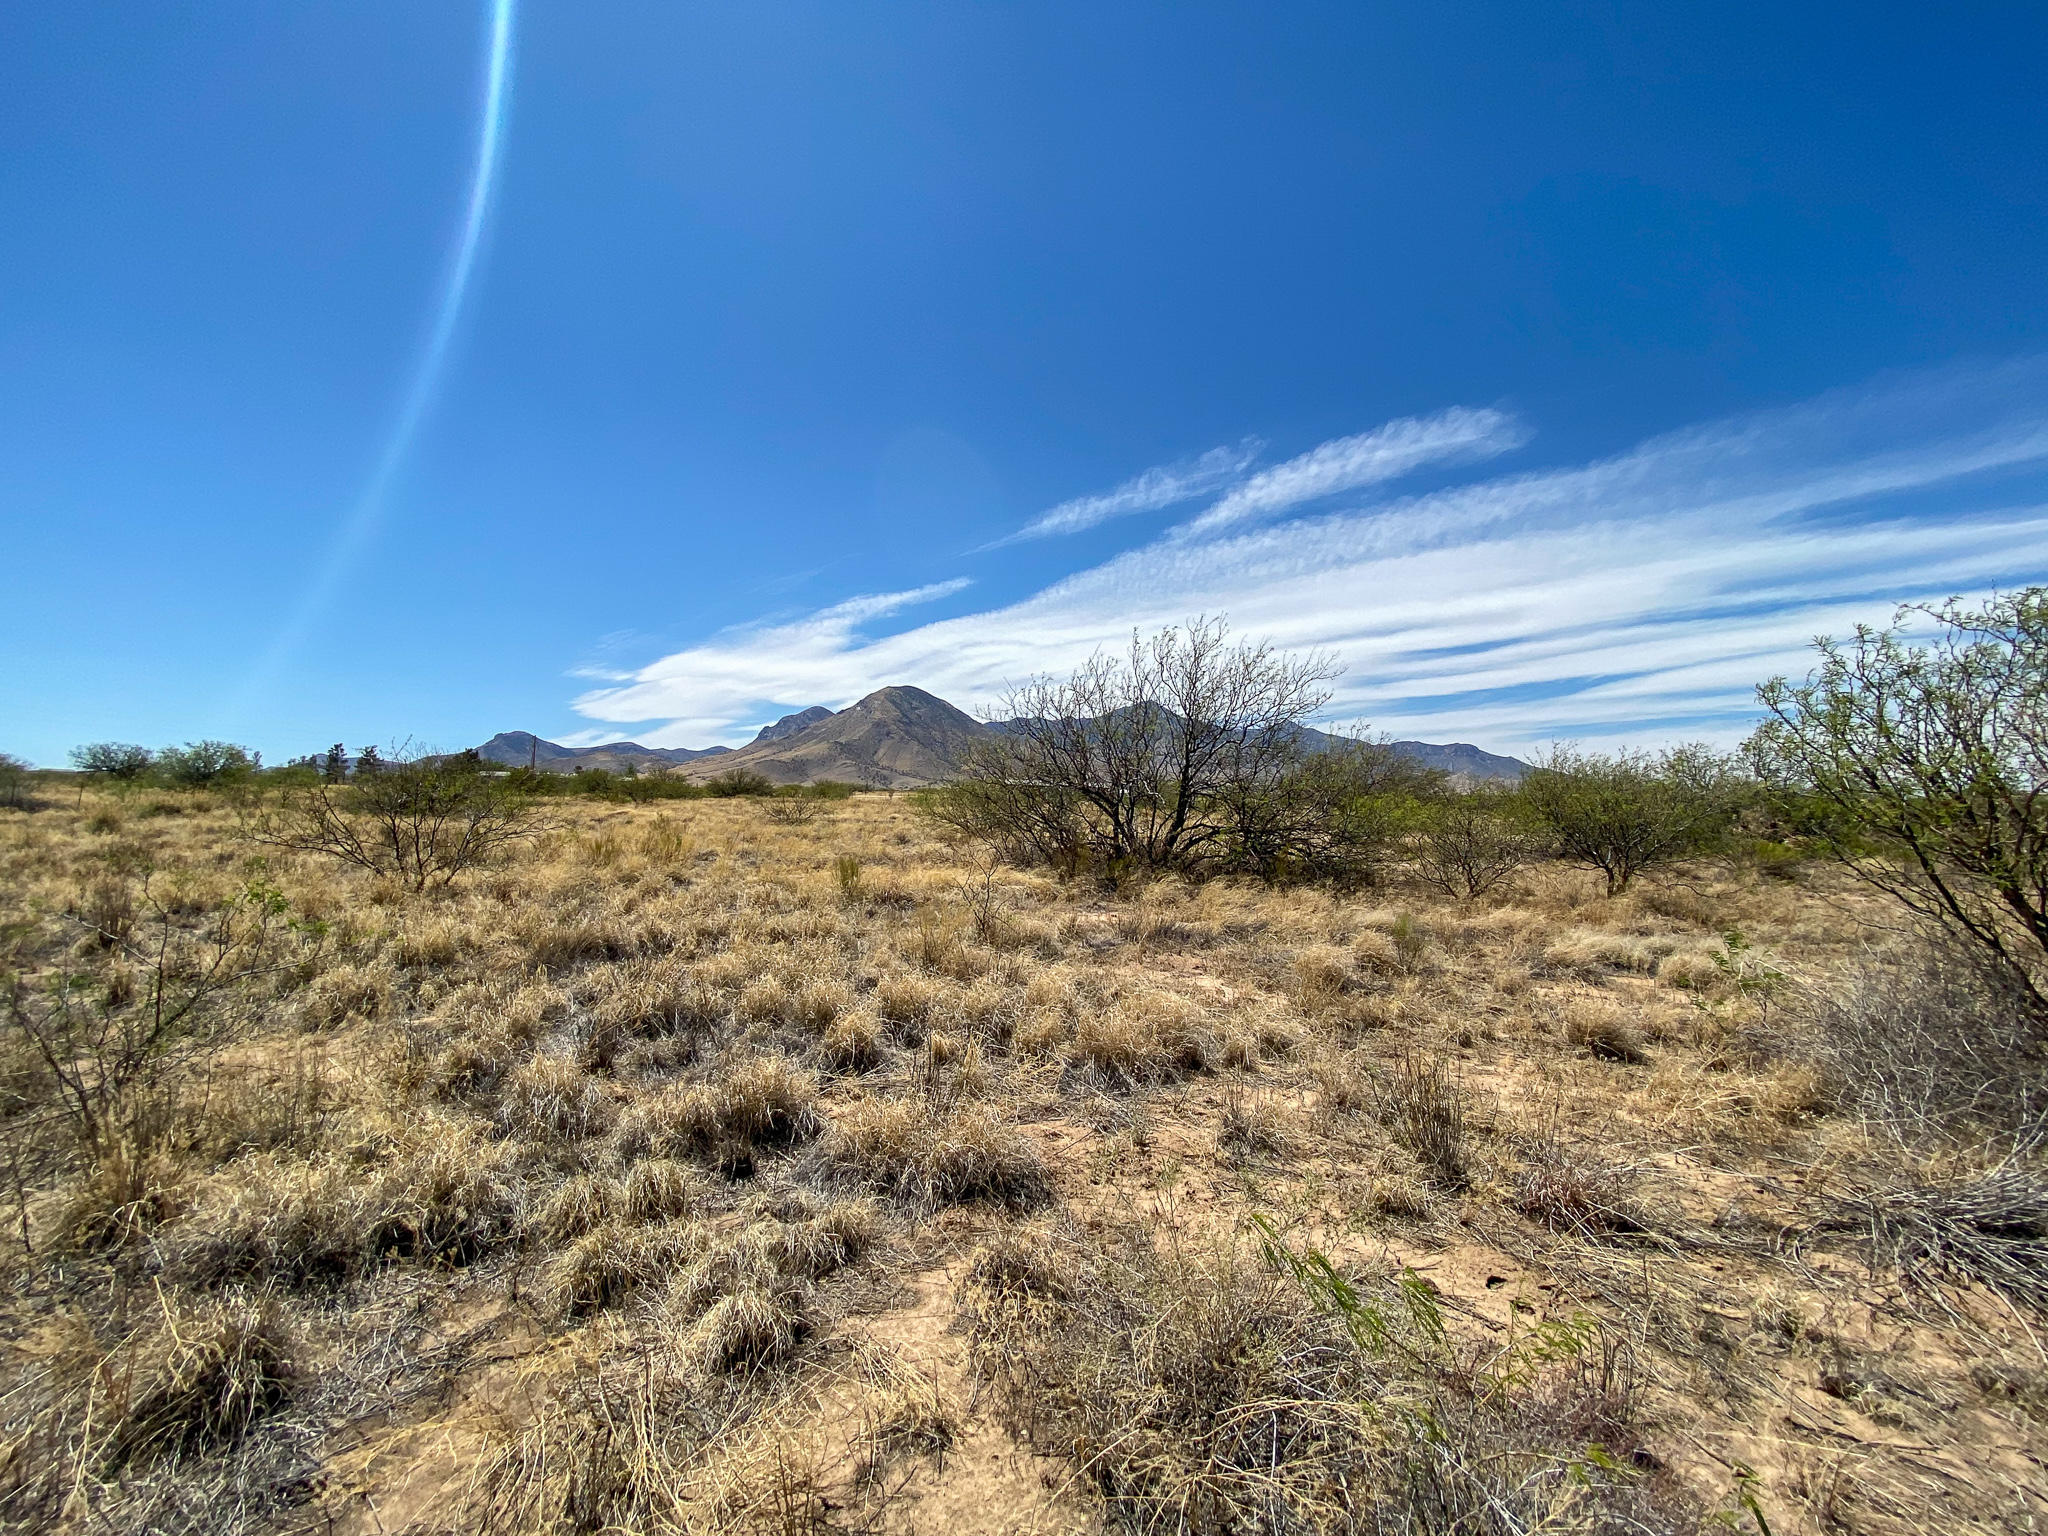 000 S Paint Ranch Road # L, Hereford, AZ 85615, ,Land,For Sale,000 S Paint Ranch Road # L,6226217